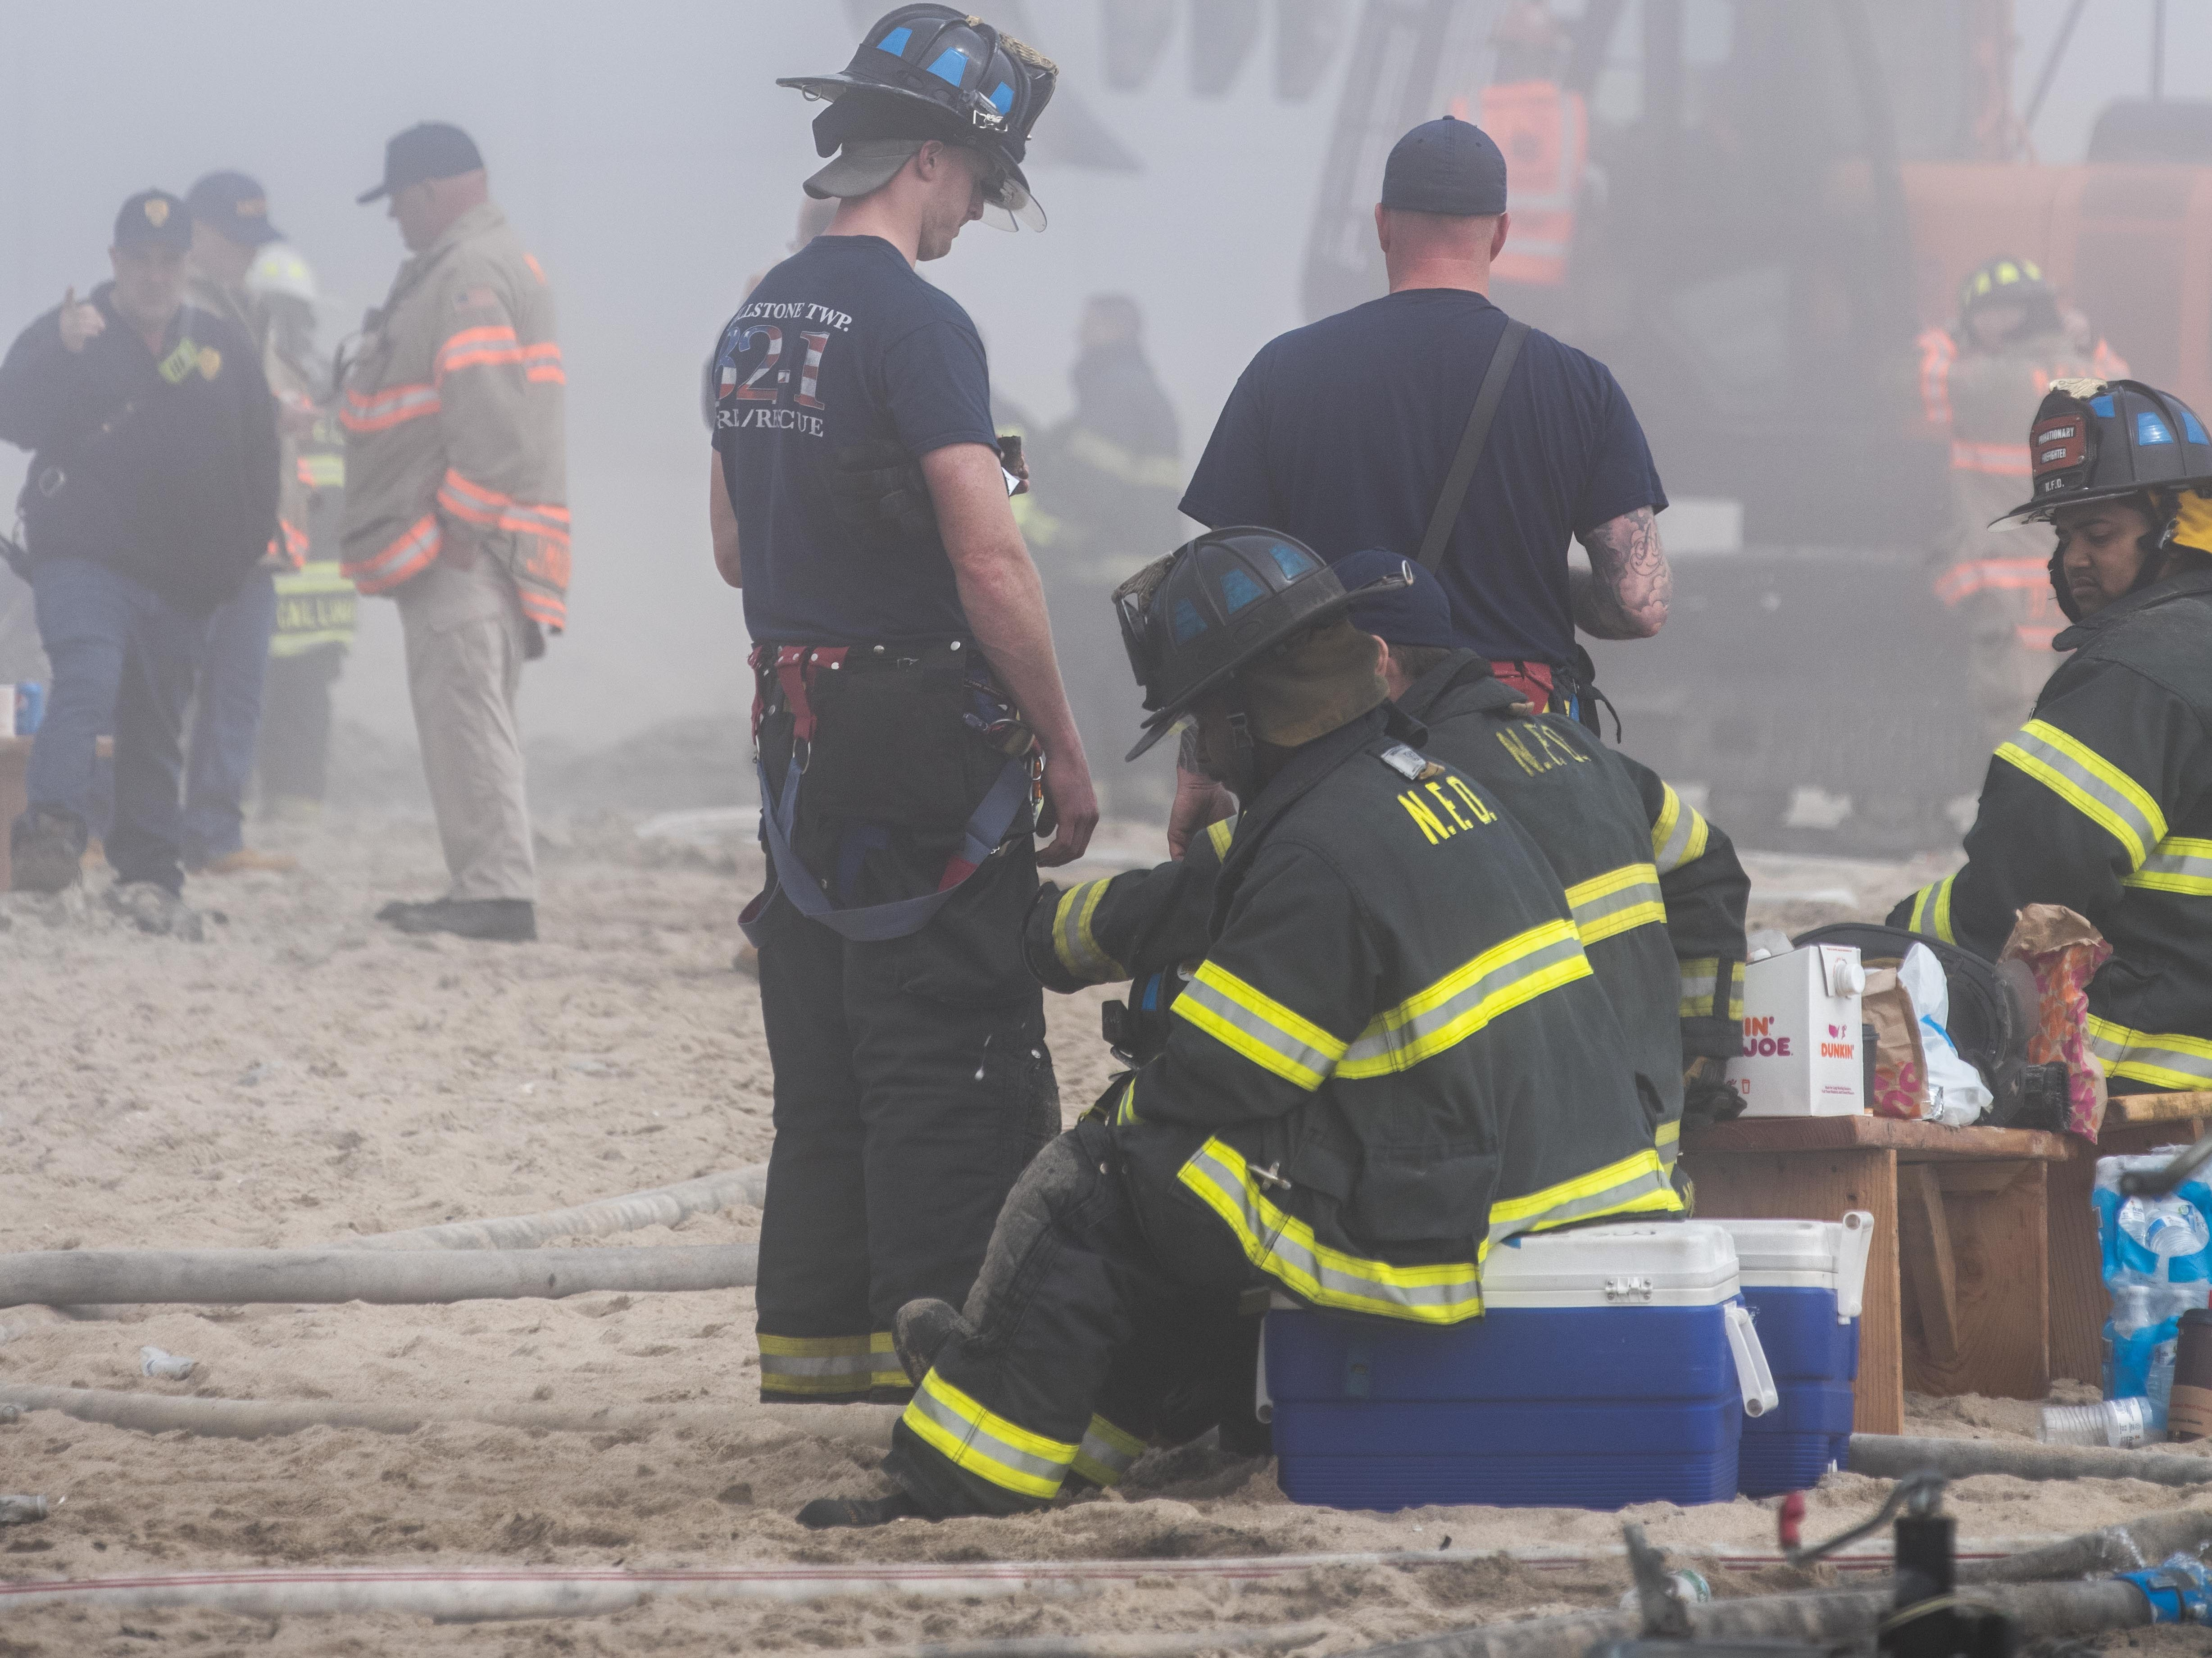 A heavy fog blankets the aftermath of The Dunes Cafe Fire on the Ocean Grove North Pavillion . Firefighters continue to hose down the smoldering remains and crews begin to move debris. Photo/James J. Connolly/Correspondent 4/14/19